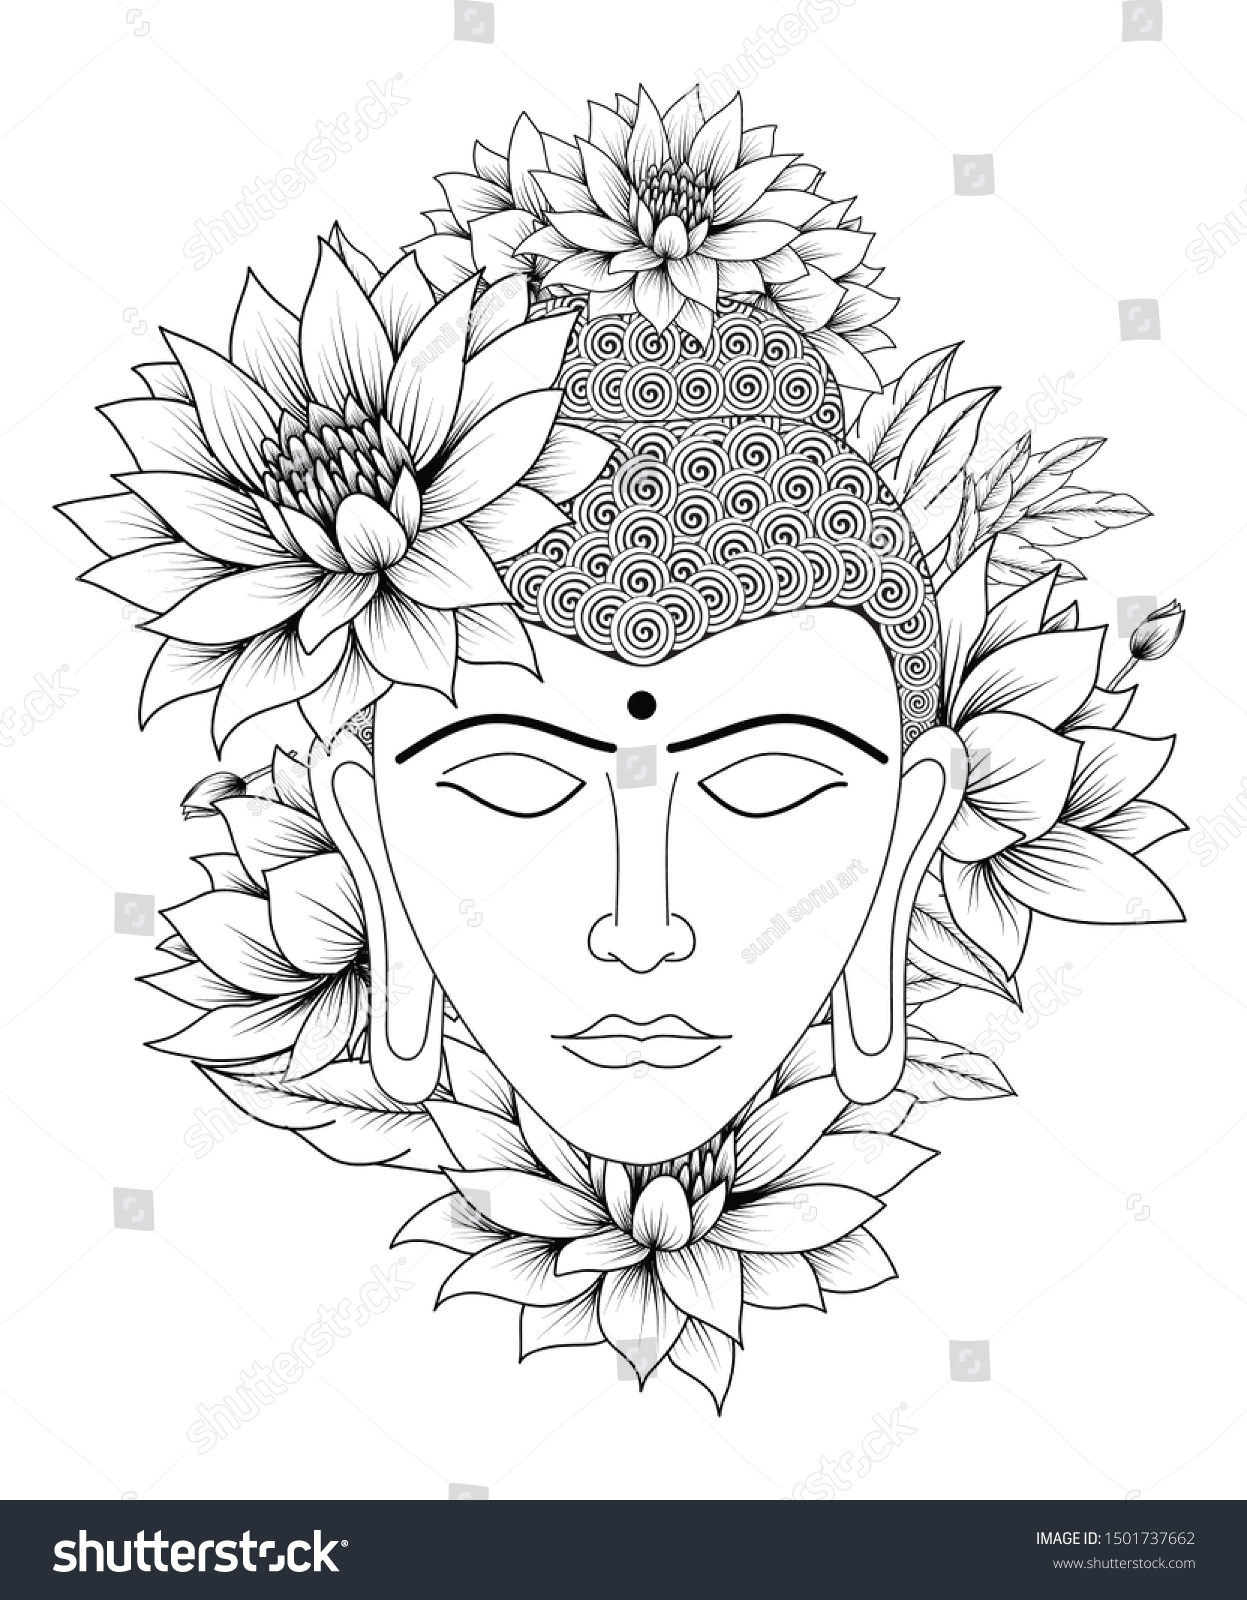 Buddha Tattoo Picture drawing buddha tattoo black art buddha stock vector (royalty